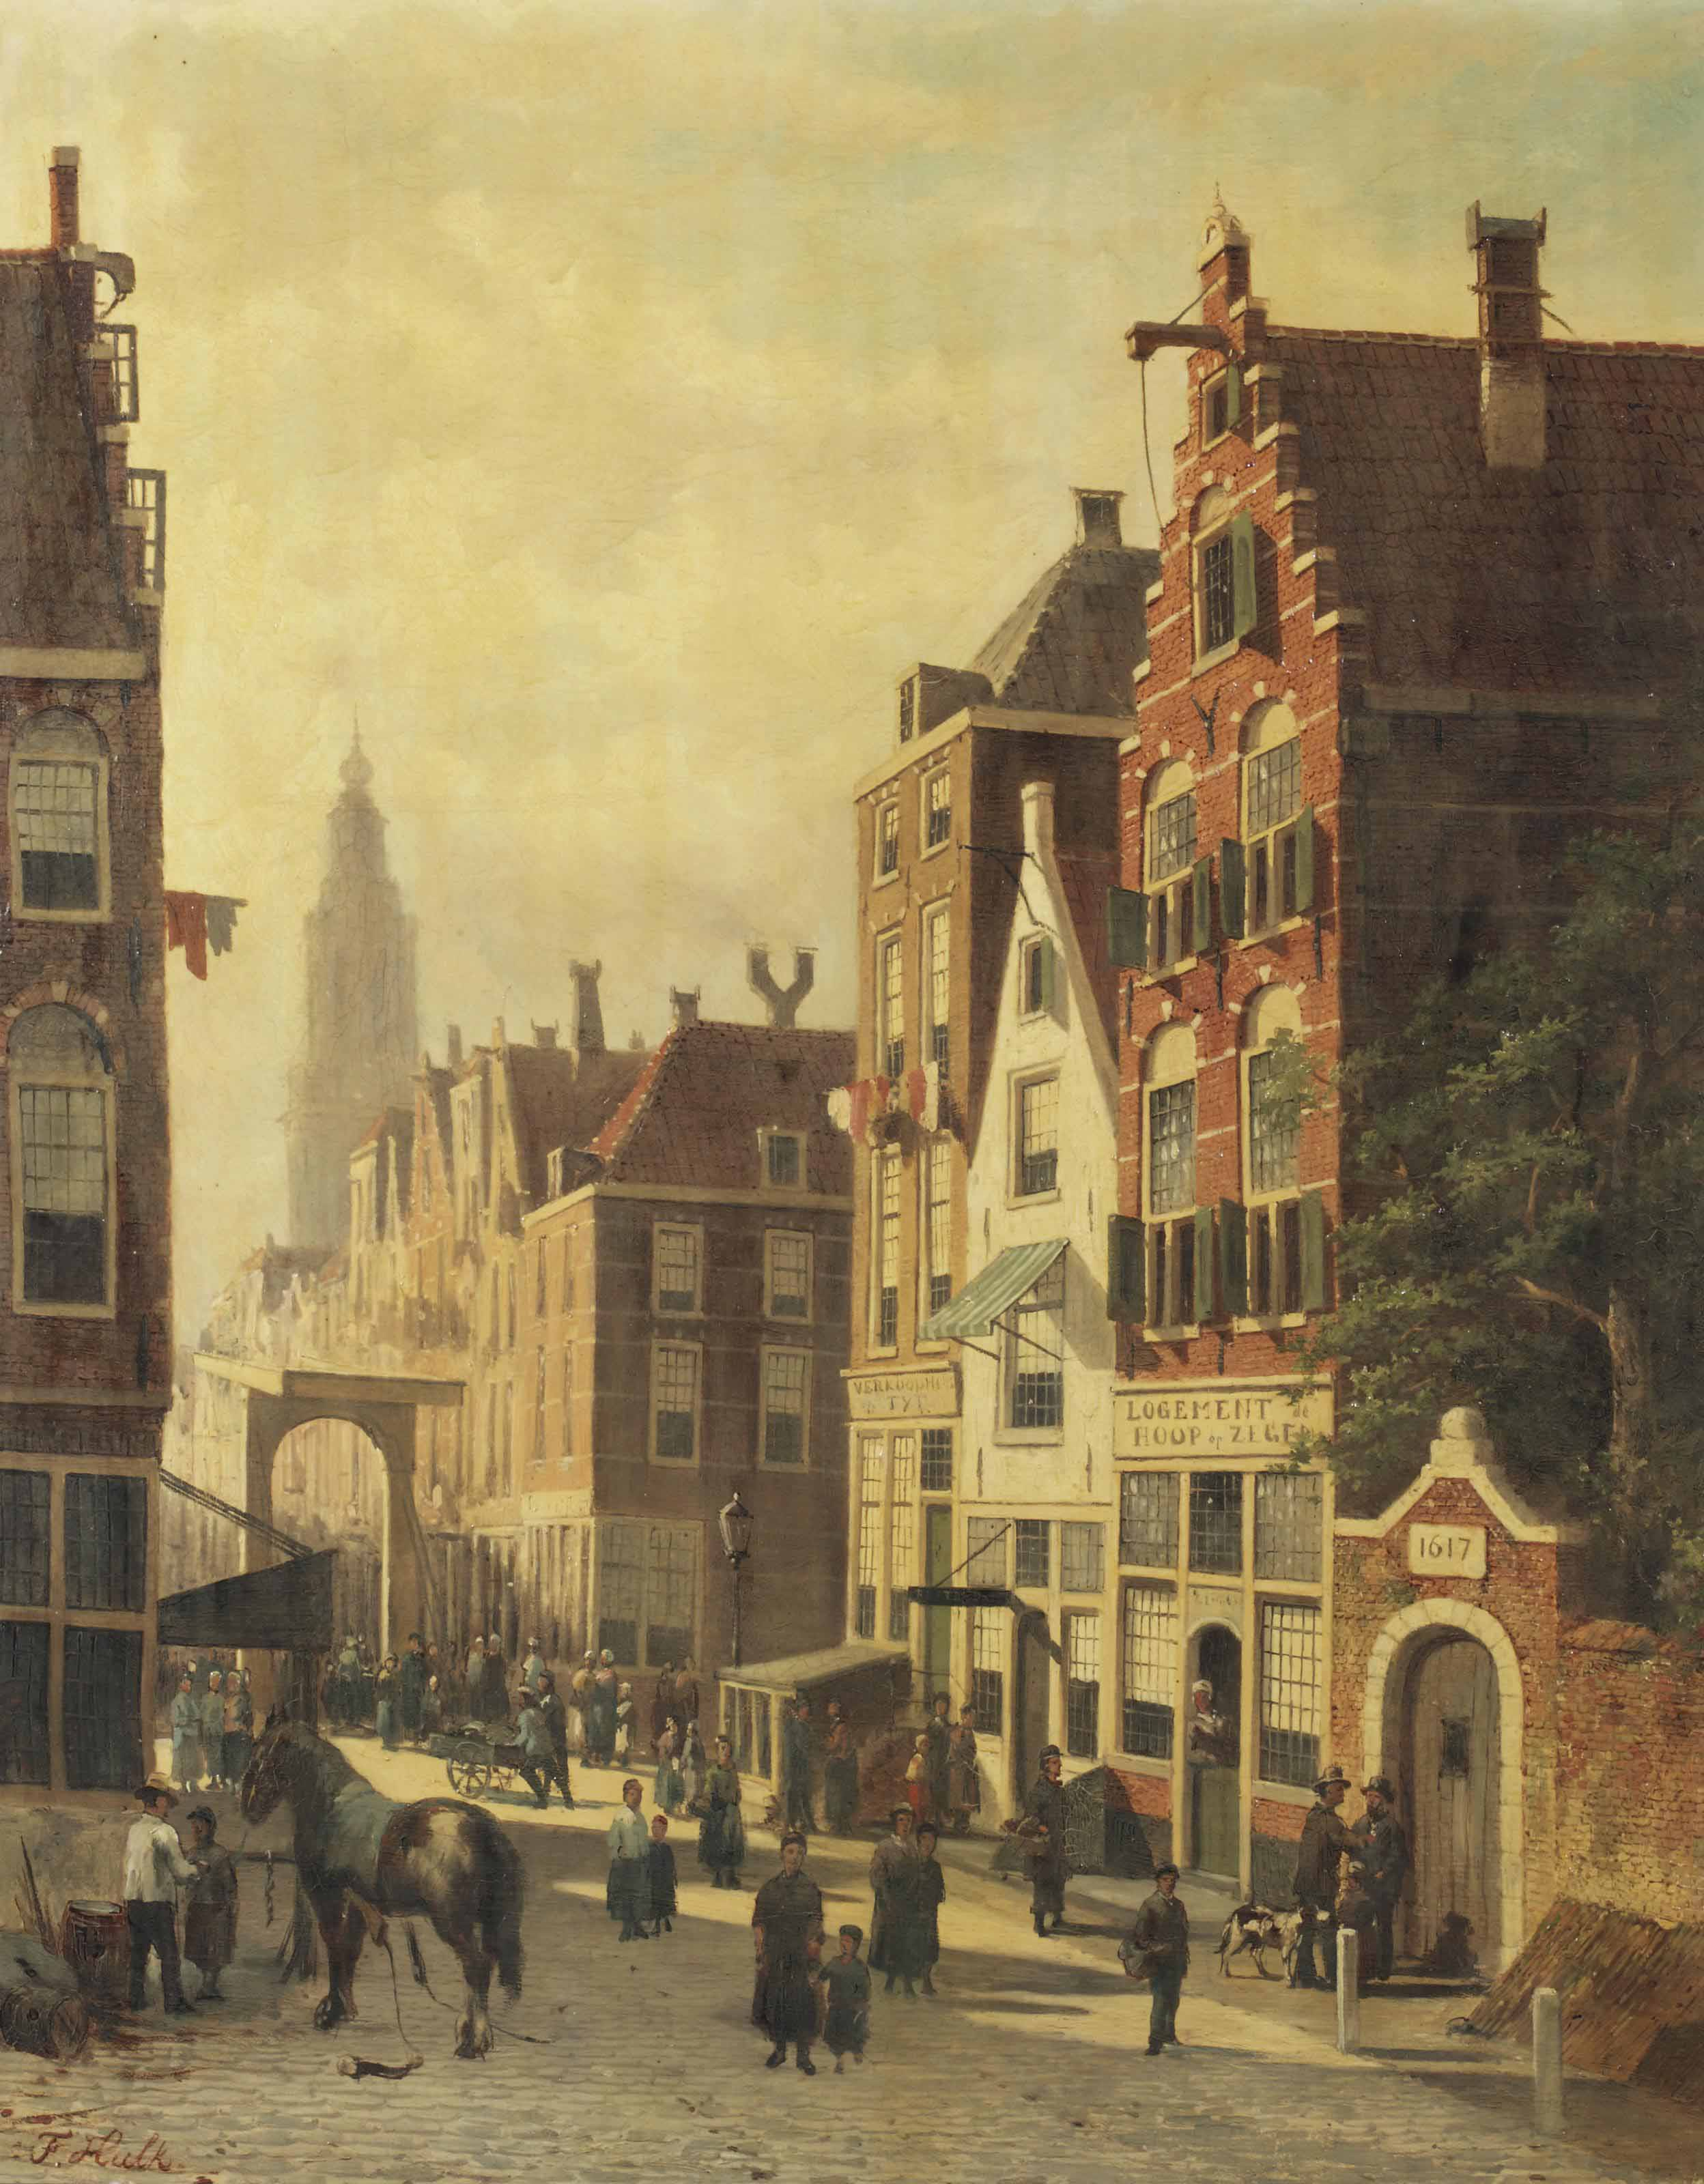 A busy sunlit street with a view of the Martinitoren, Groningen